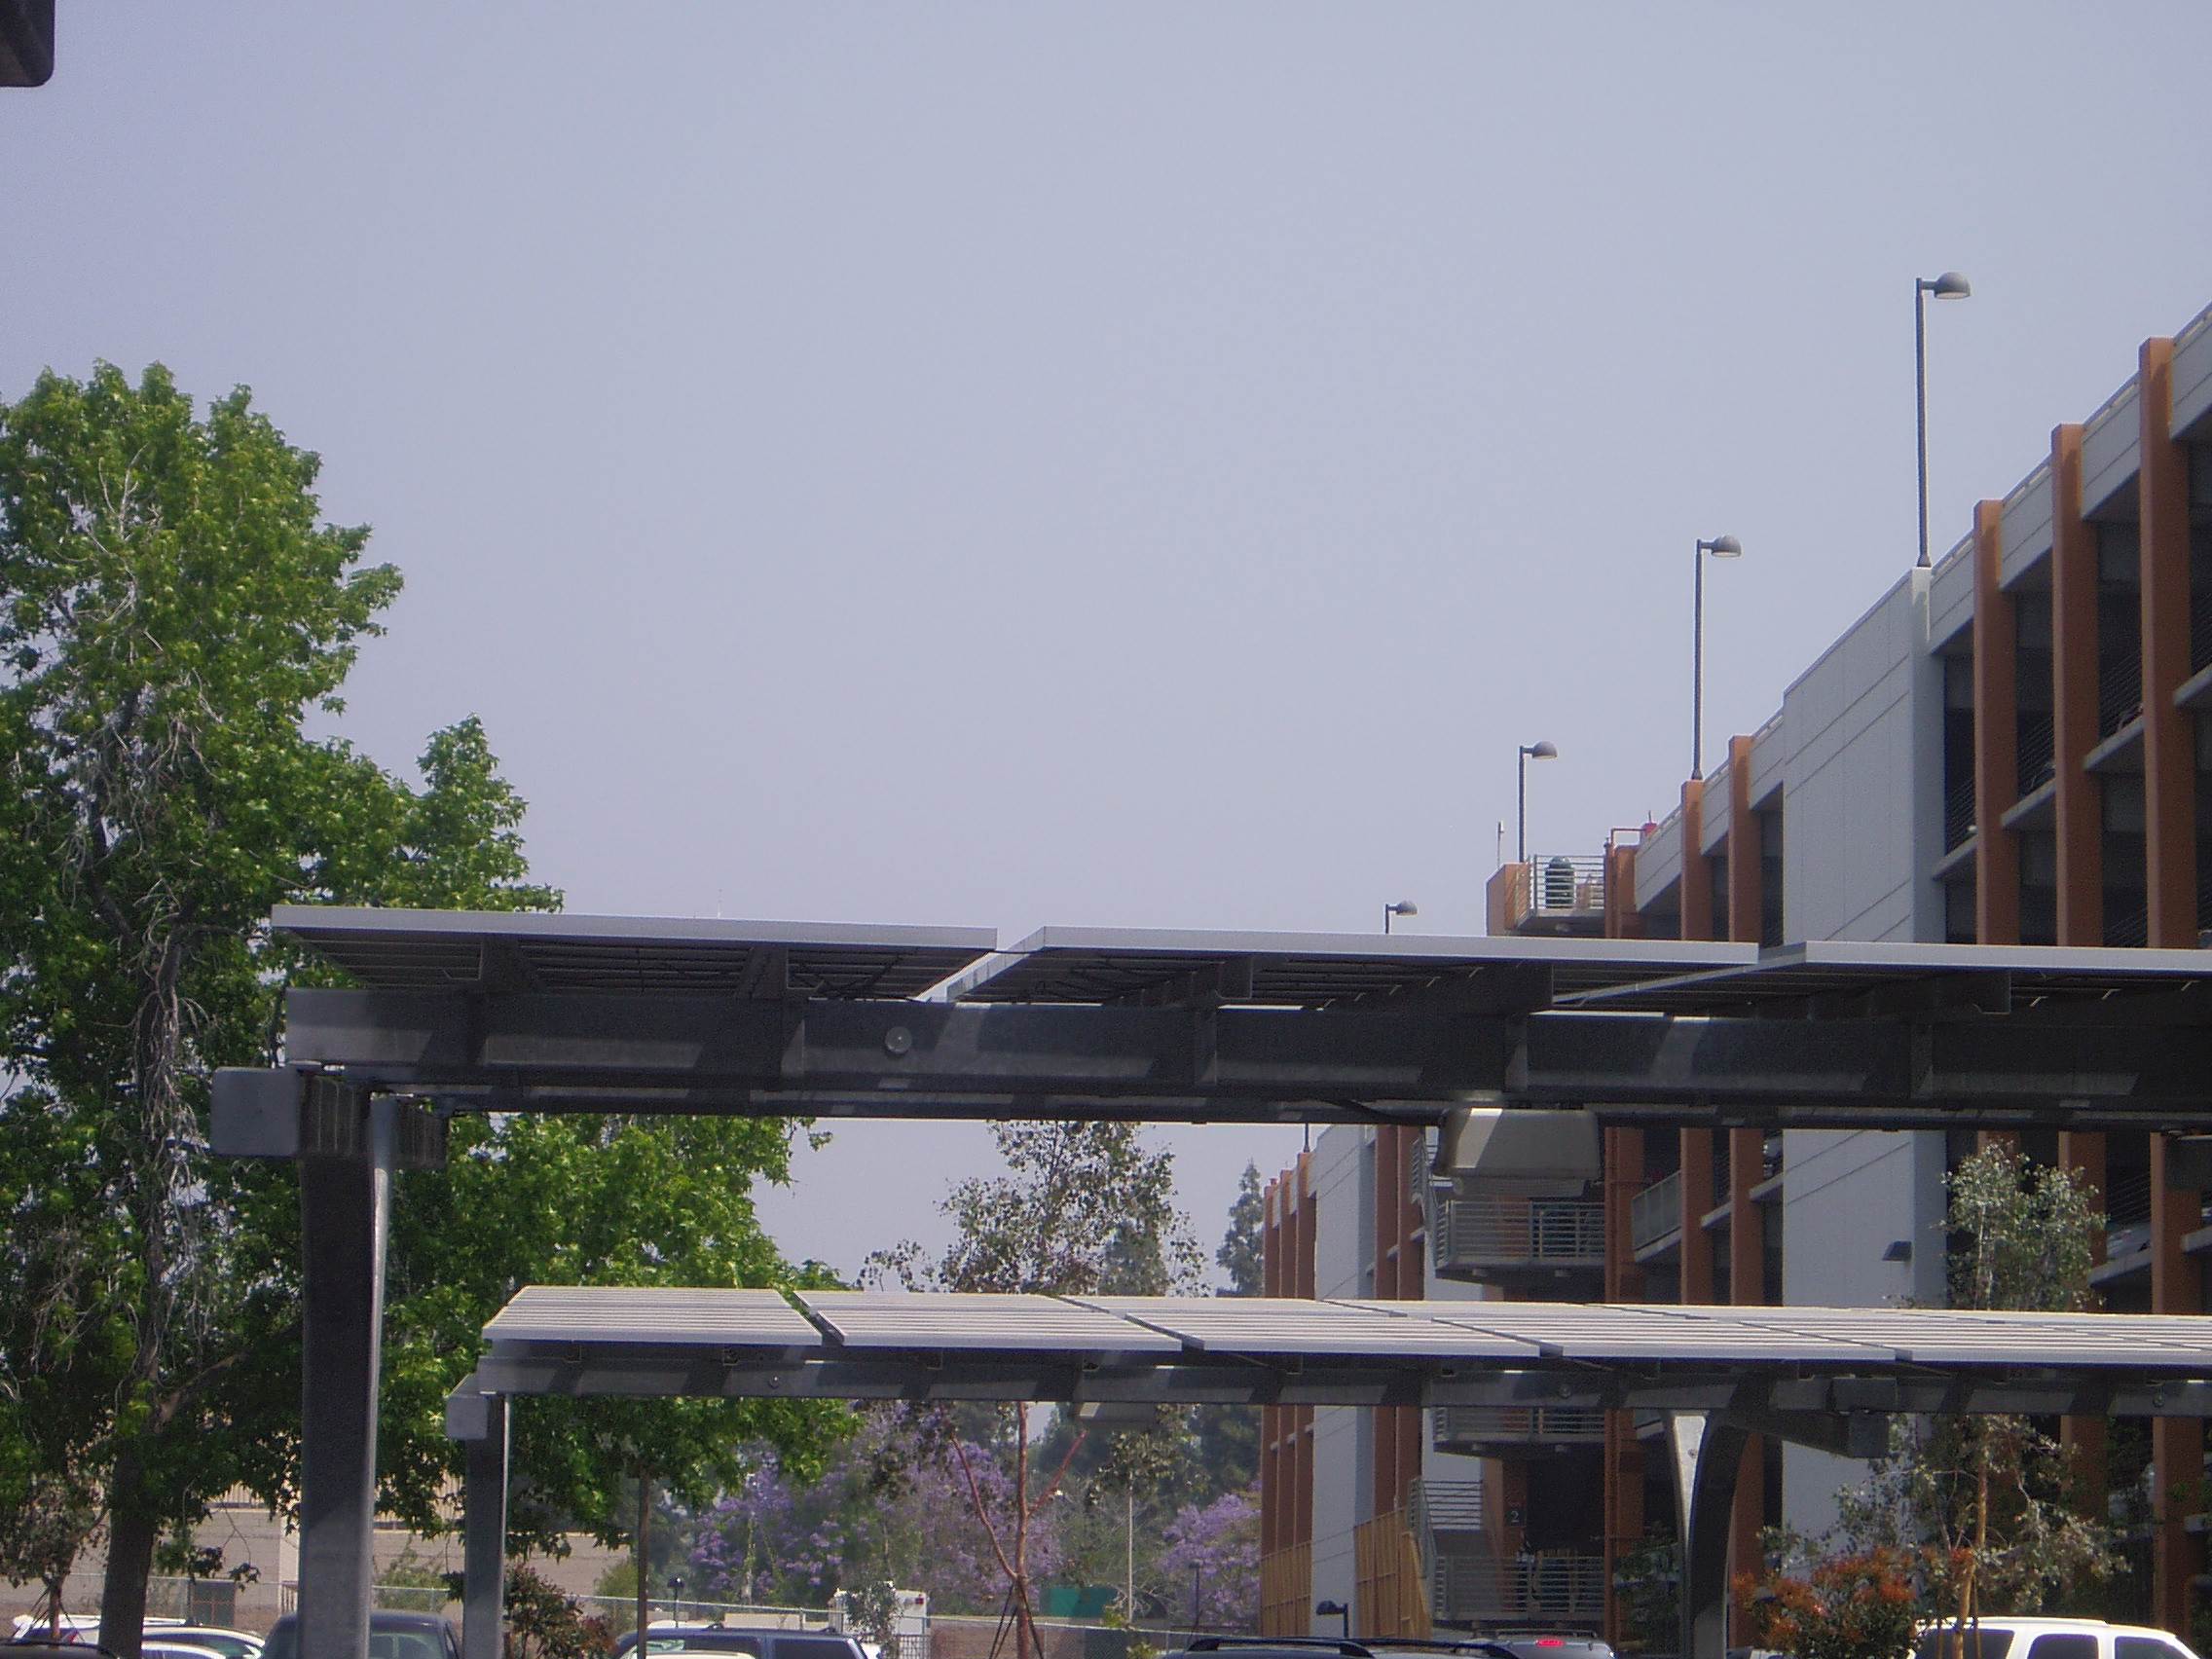 More Solar Parking Canopy